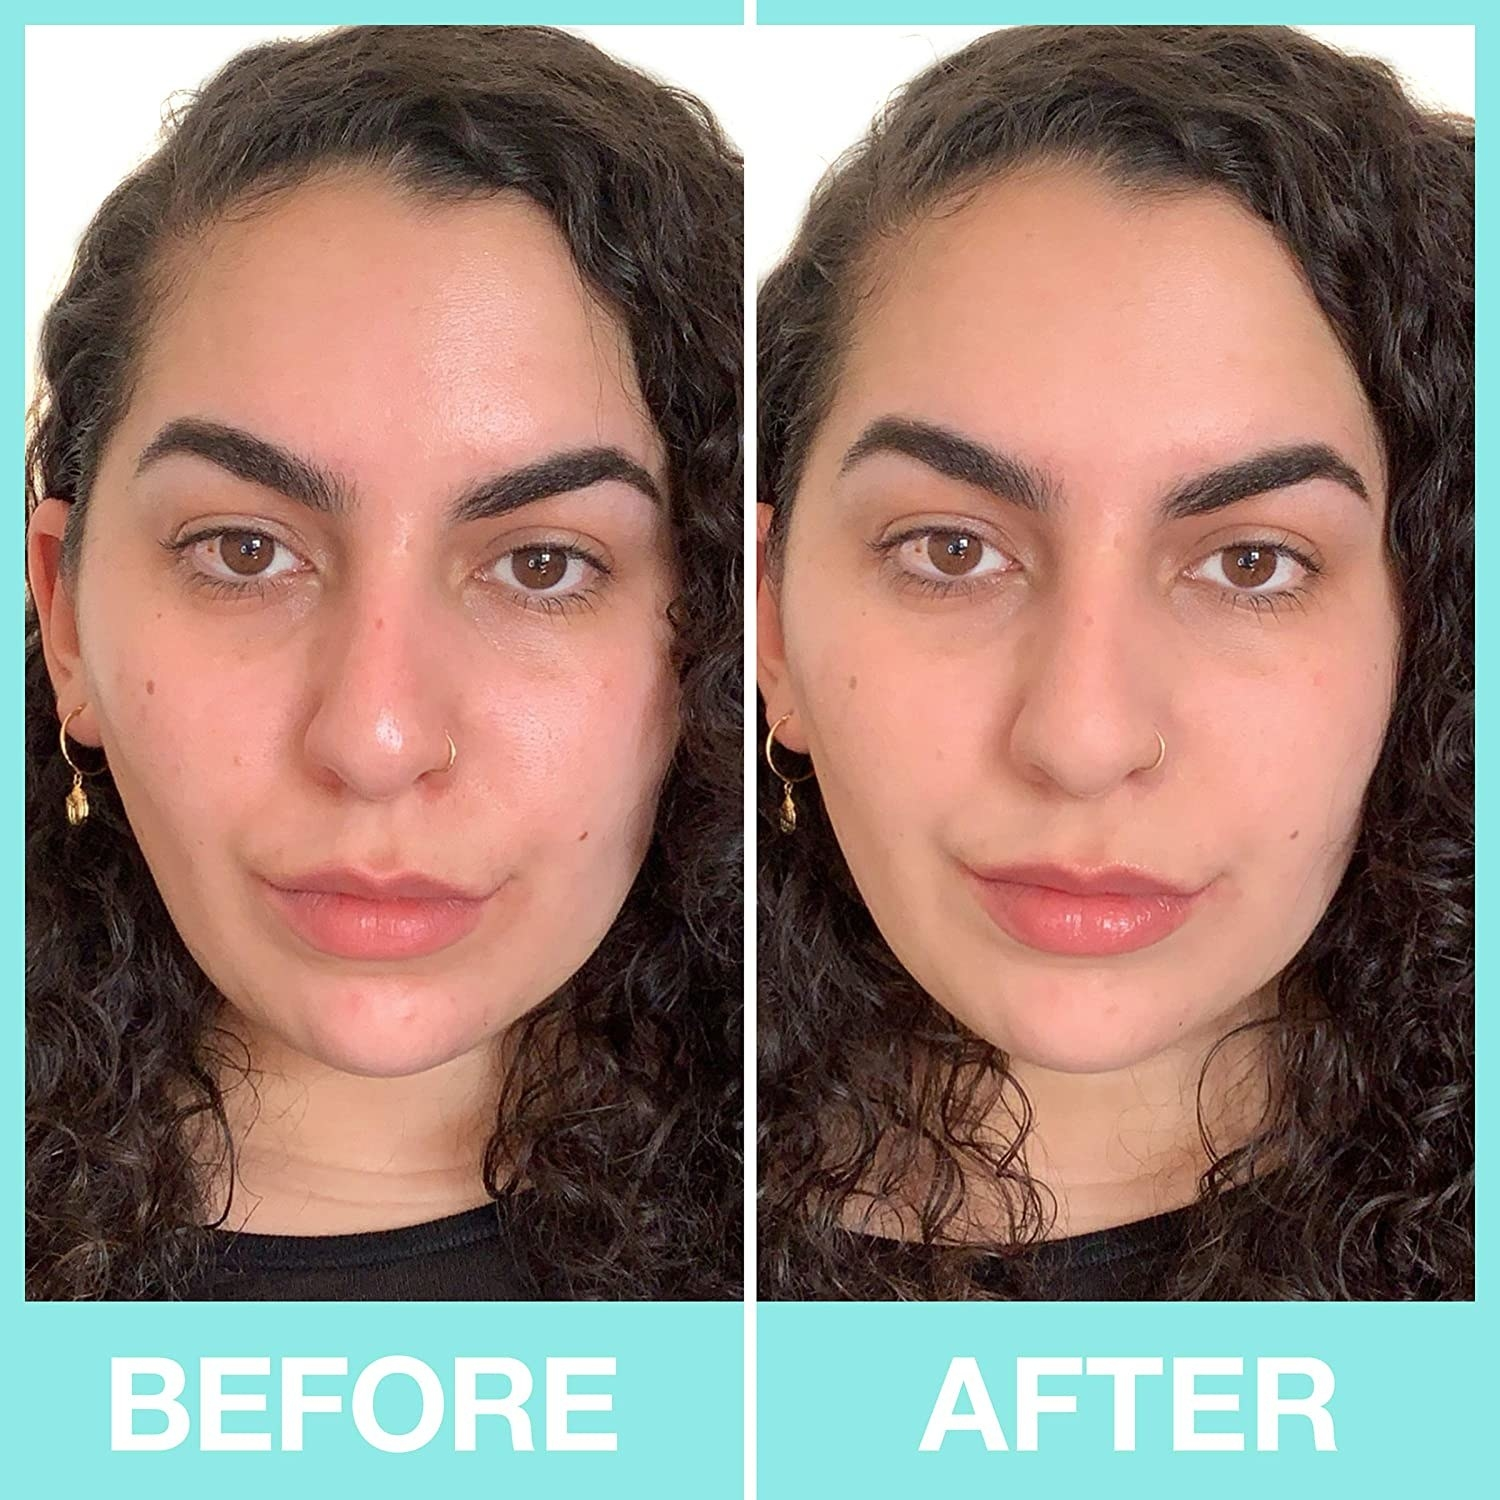 before and after photo of model with red skin on left and visibly more even skin on right